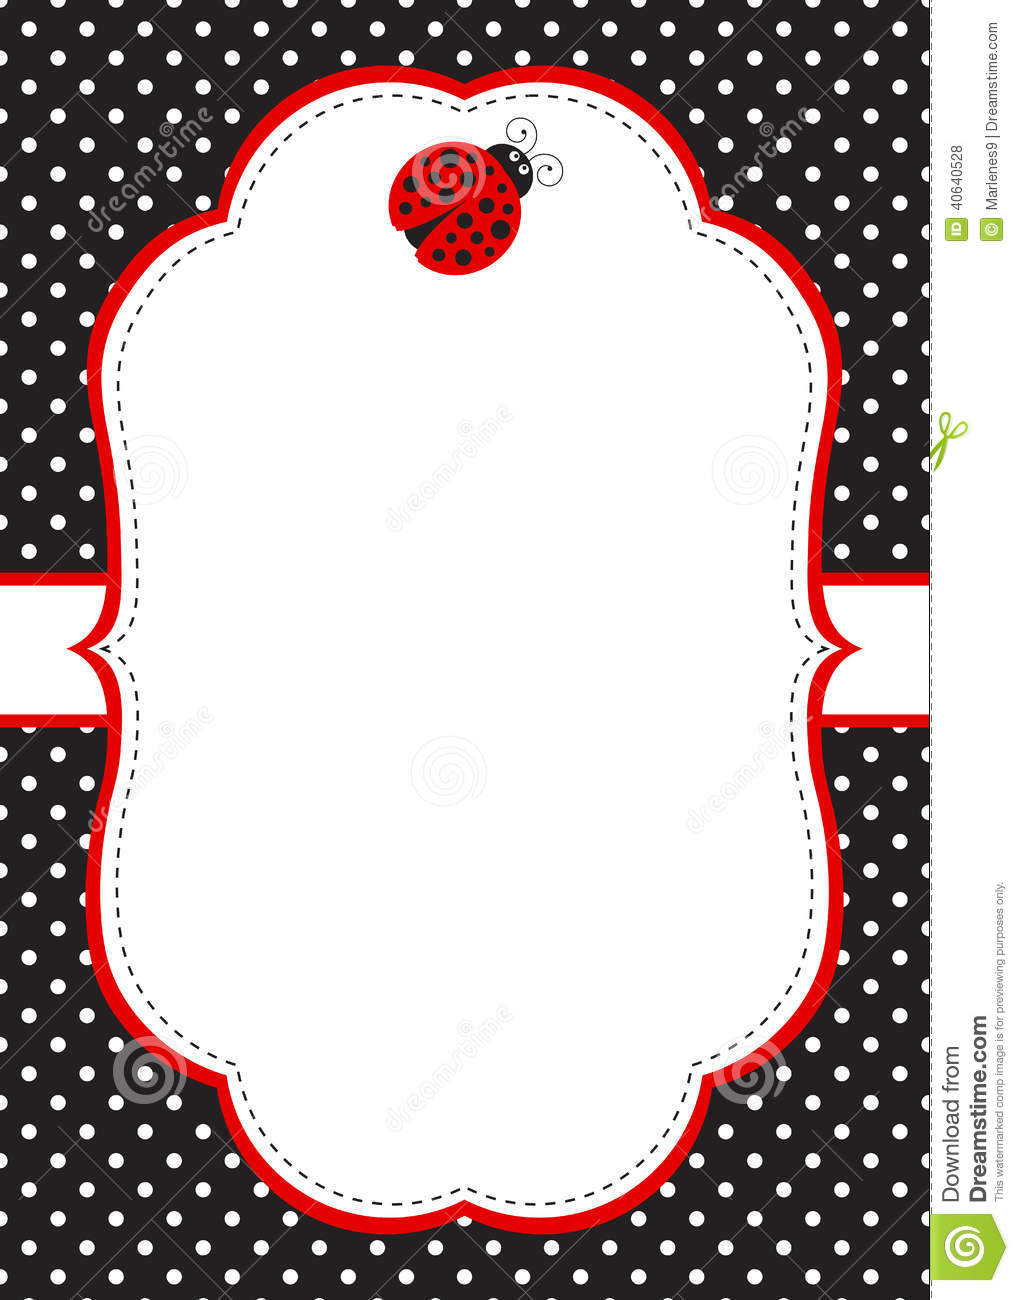 ladybug invitation template stock vector illustration of birthday